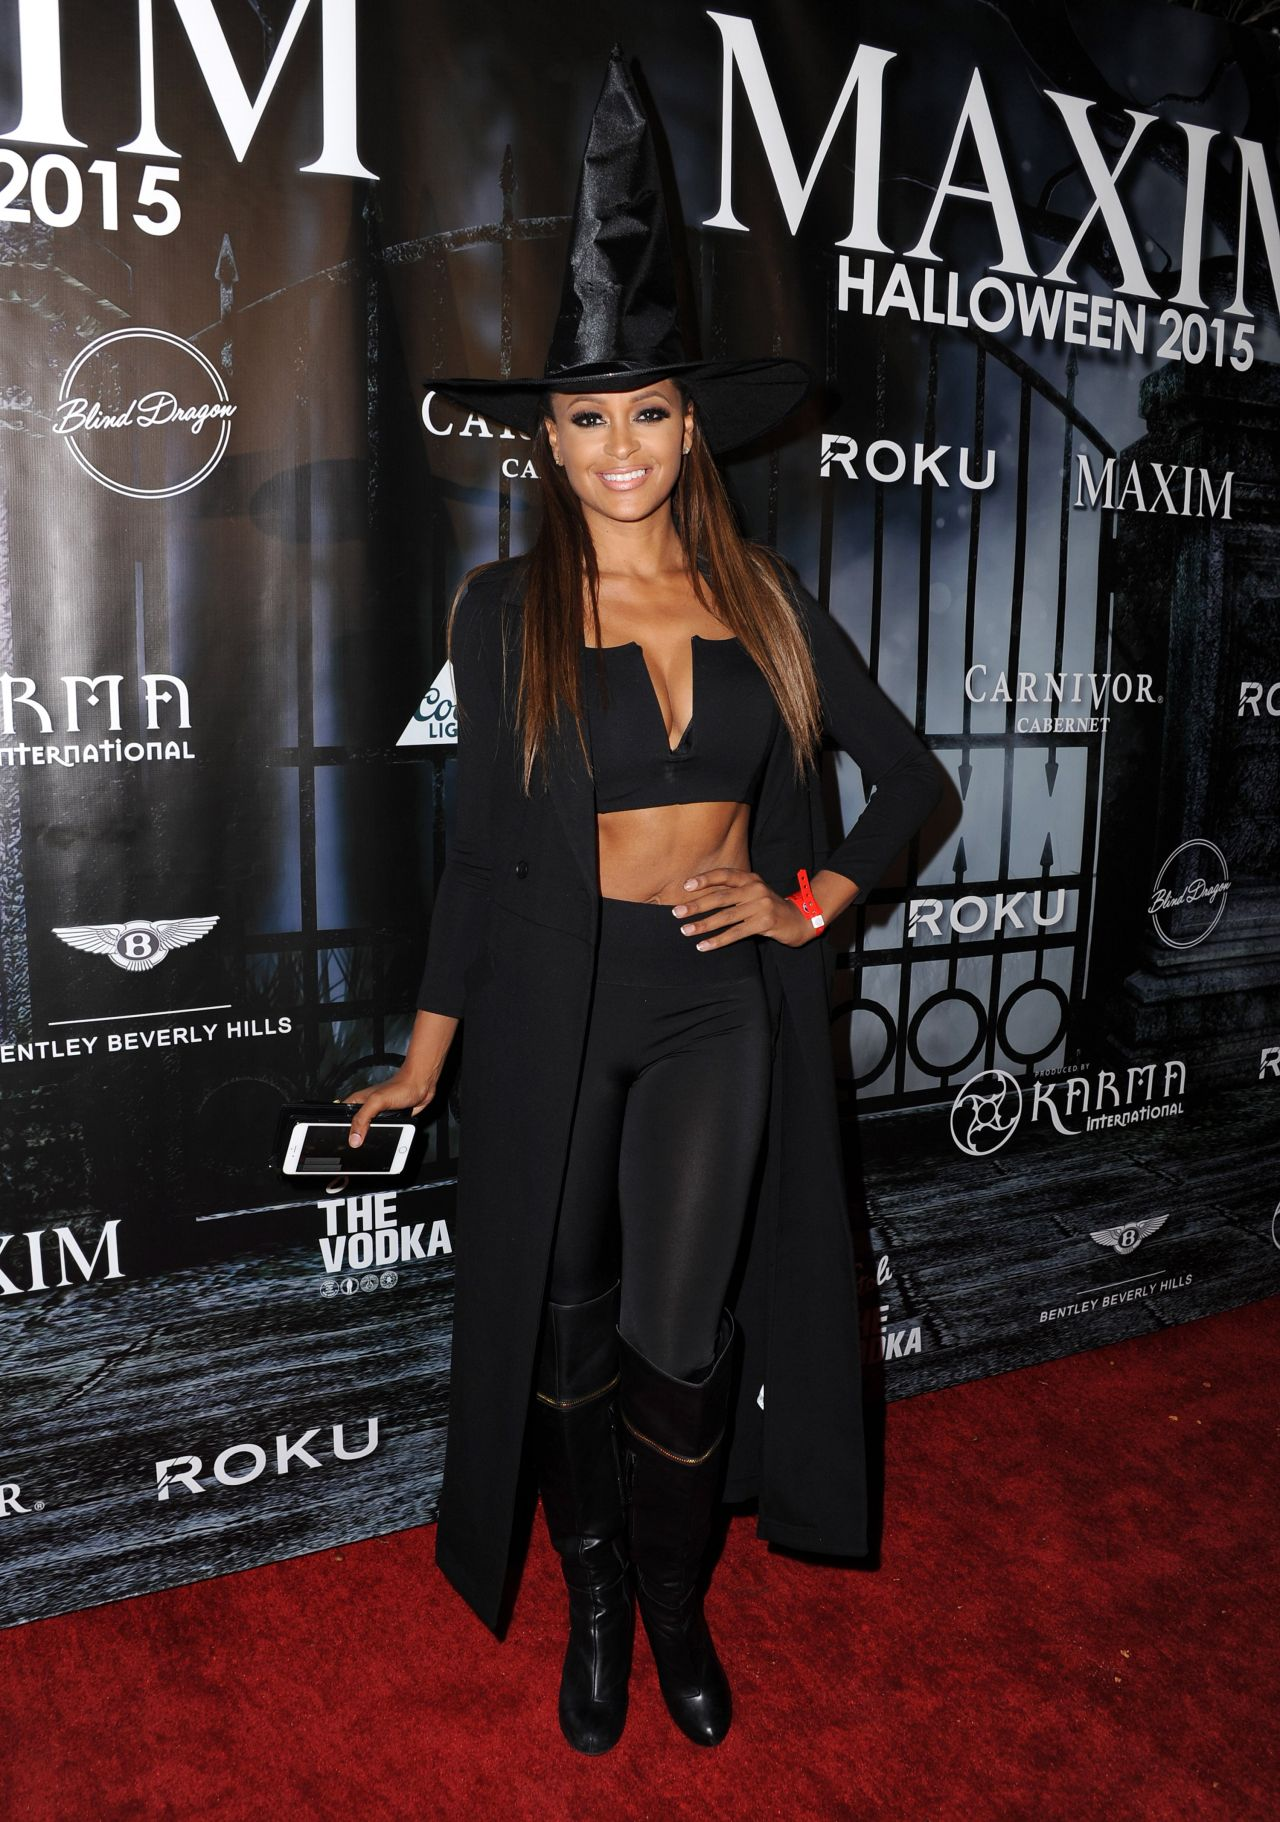 Jordan - The Official MAXIM Halloween Party in Beverly Hills ...